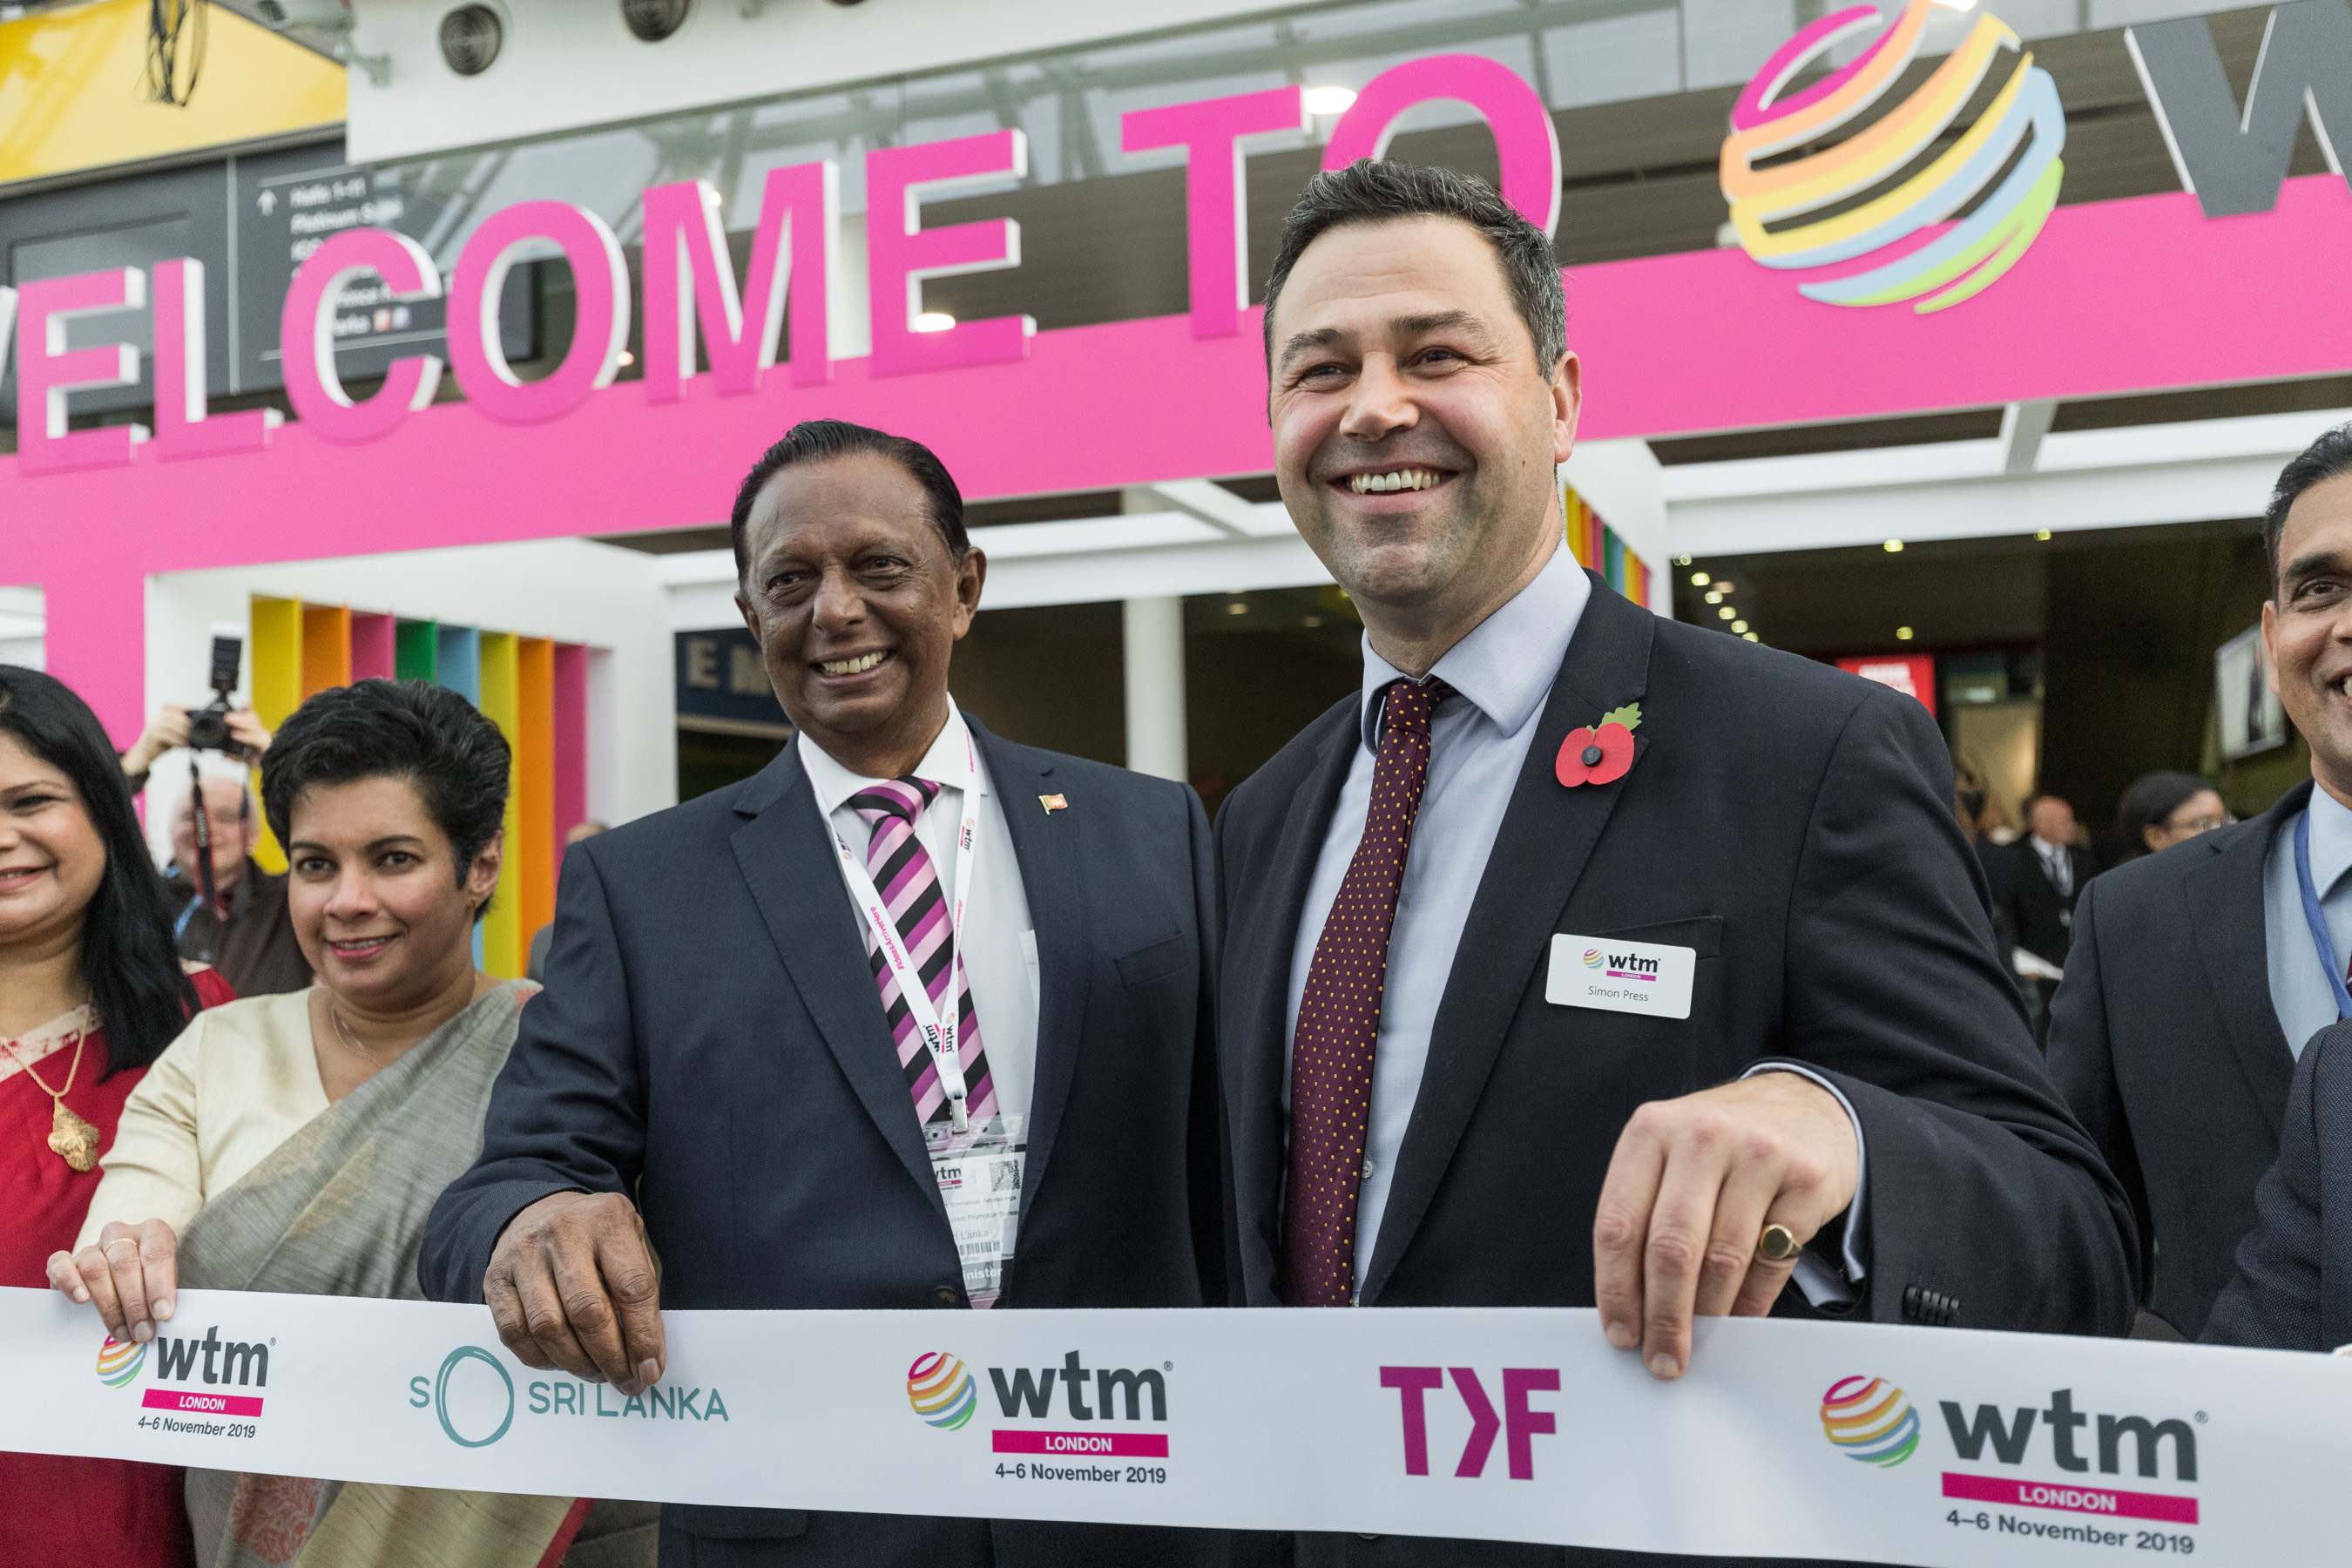 Rt Hon John Amaratunga, Minister of Tourism Development Sri Lanka and Simon Press, Senior Exhibition Director, performs the opening ceremony of the 40th World Travel Market